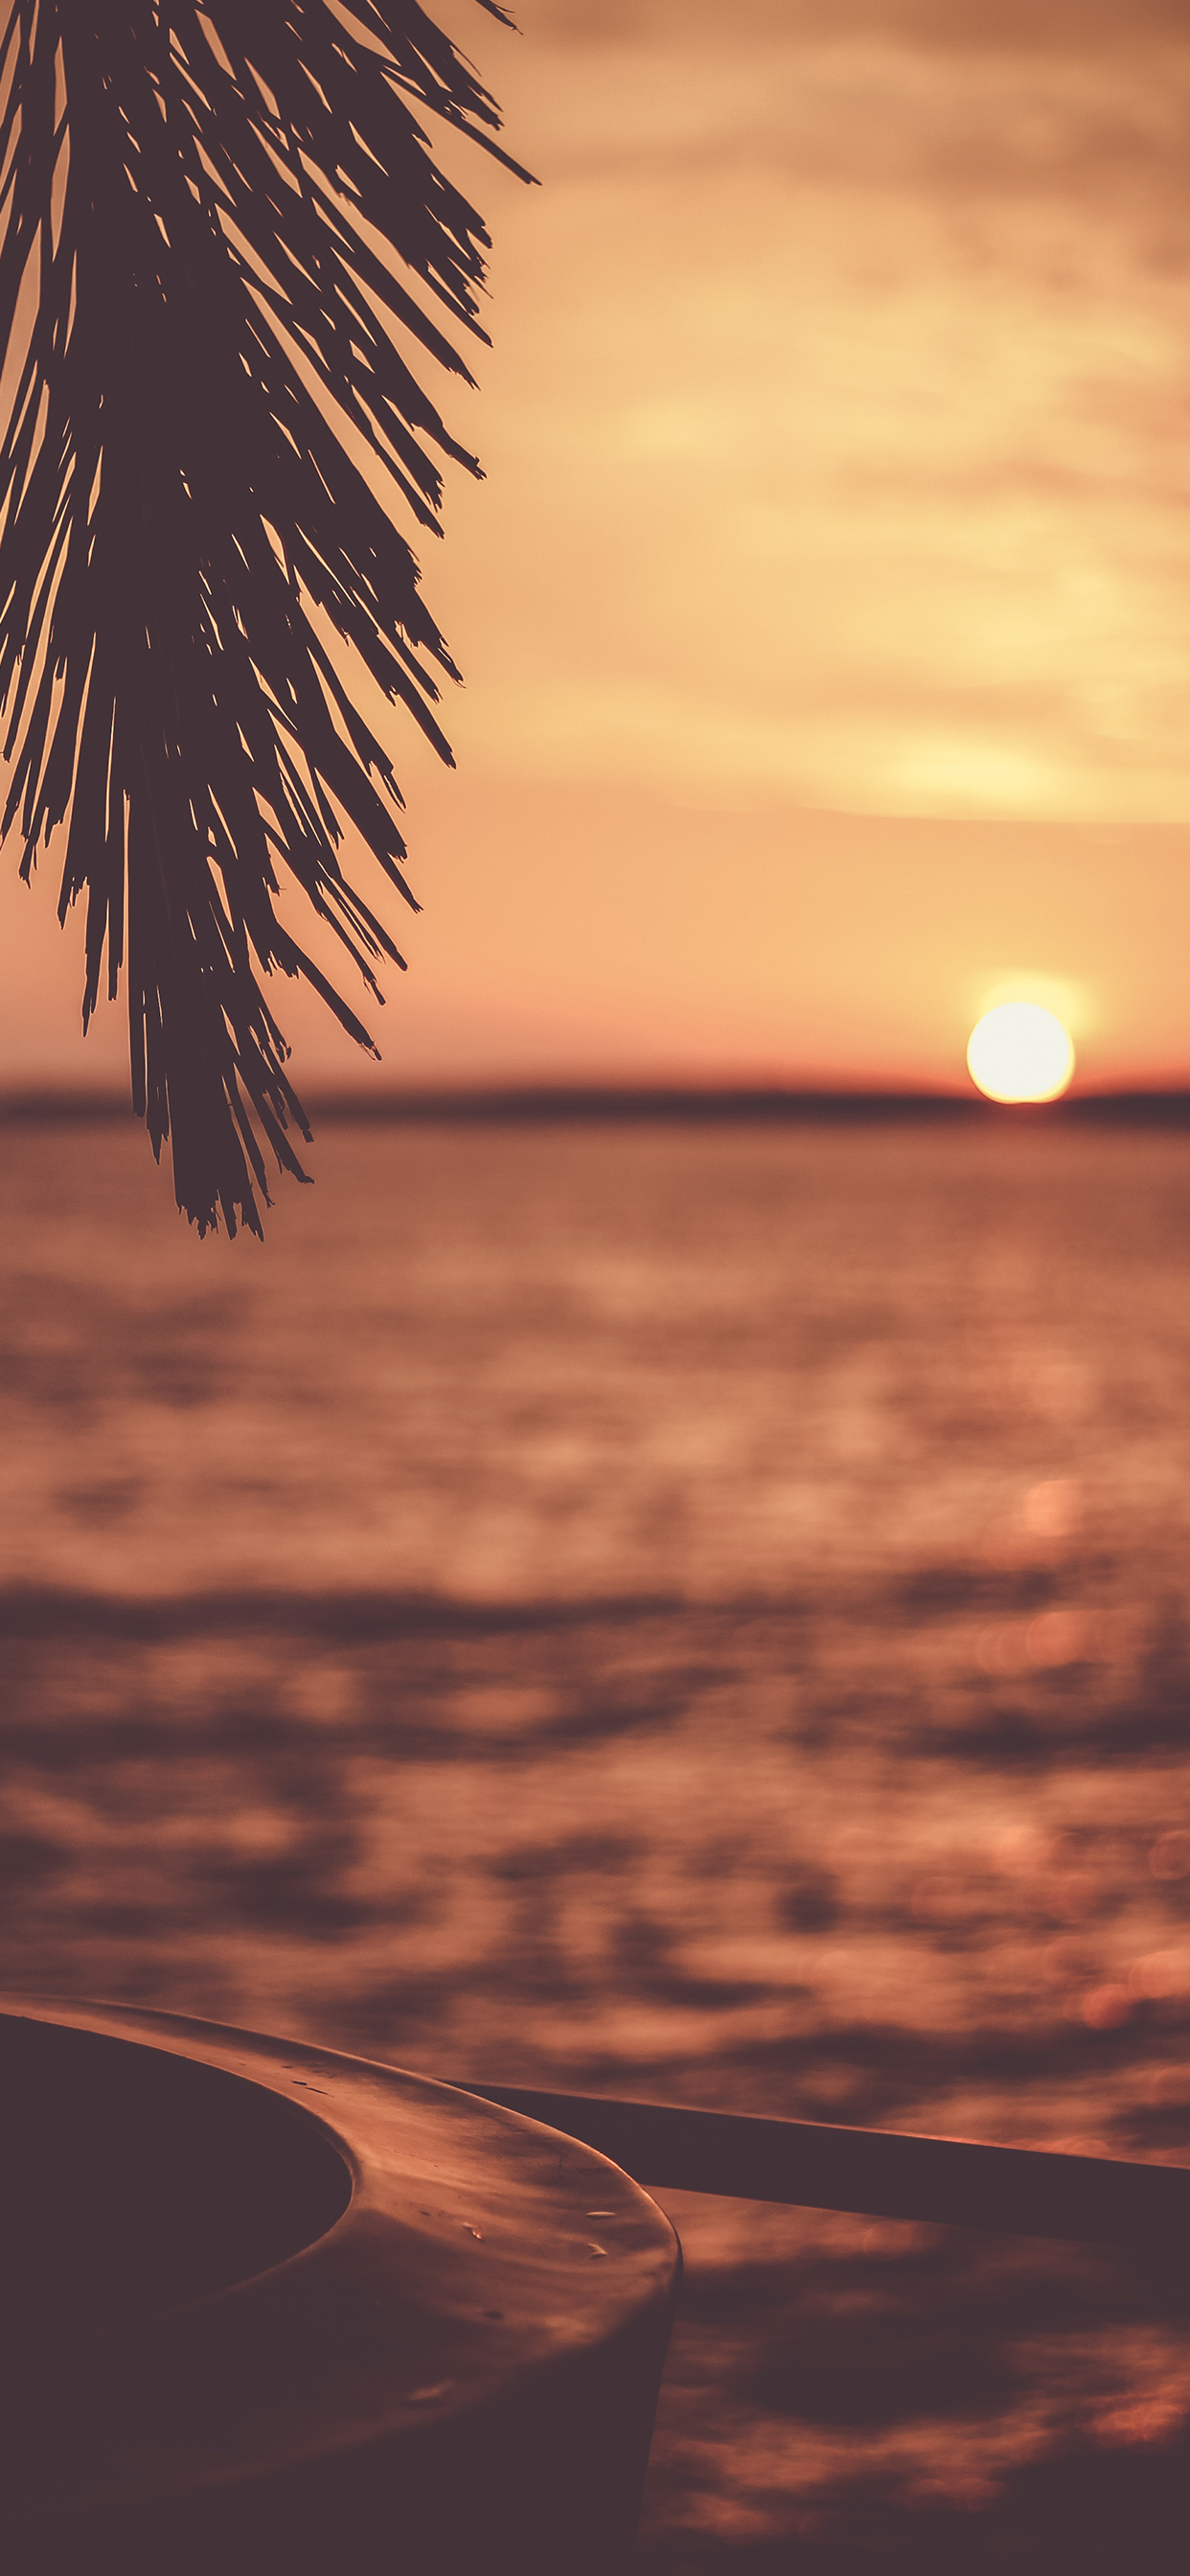 Sunset Iphone Wallpapers Top Free Sunset Iphone Backgrounds Wallpaperaccess